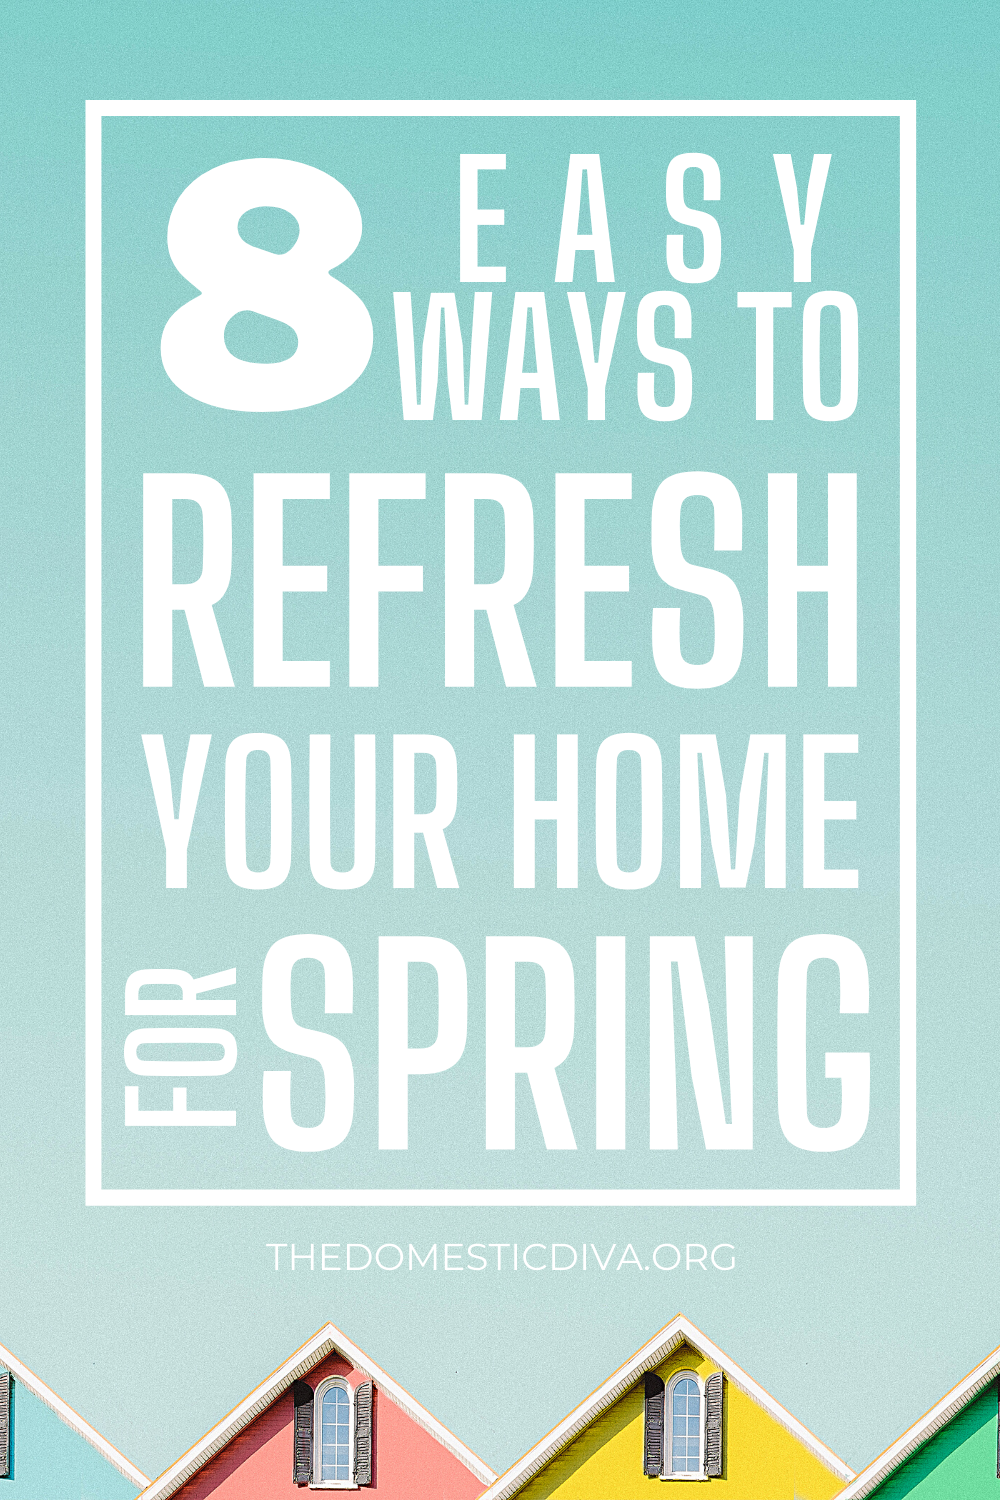 8 easy ways to refresh your home